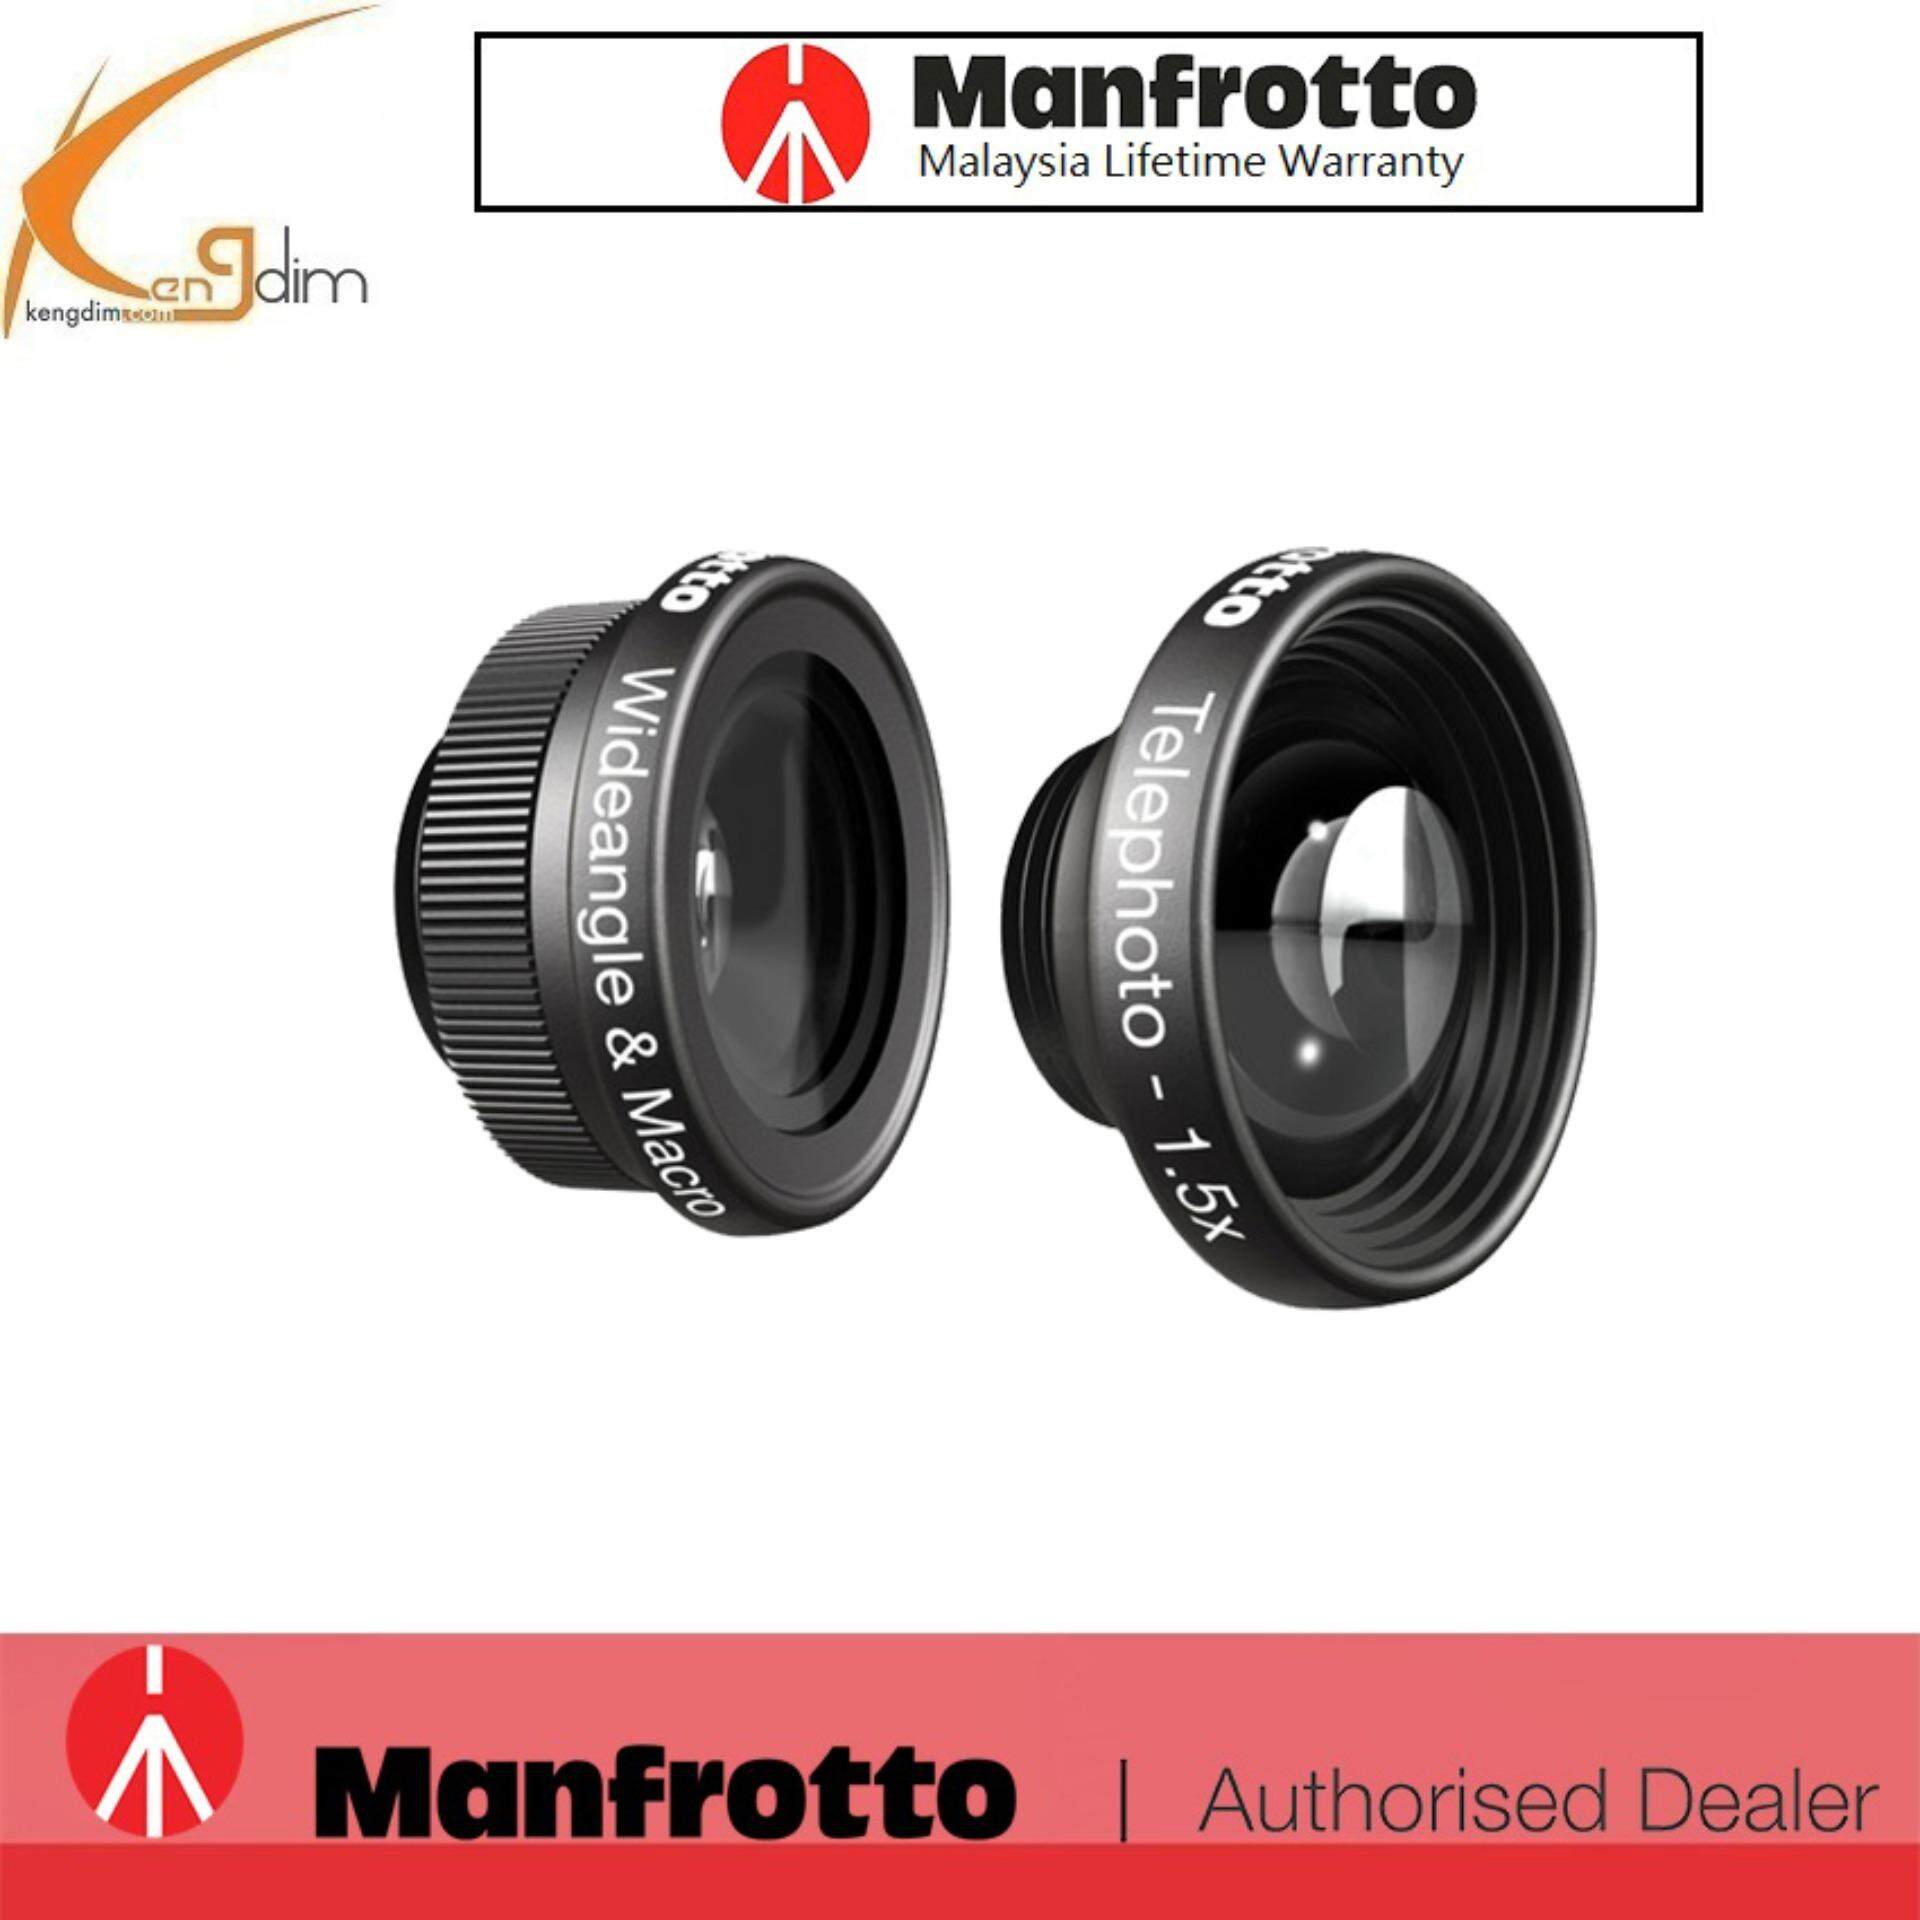 huge selection of 9dc06 f7ec4 Maxone,Manfrotto Smartphone Lenses price in Malaysia - Best Maxone ...